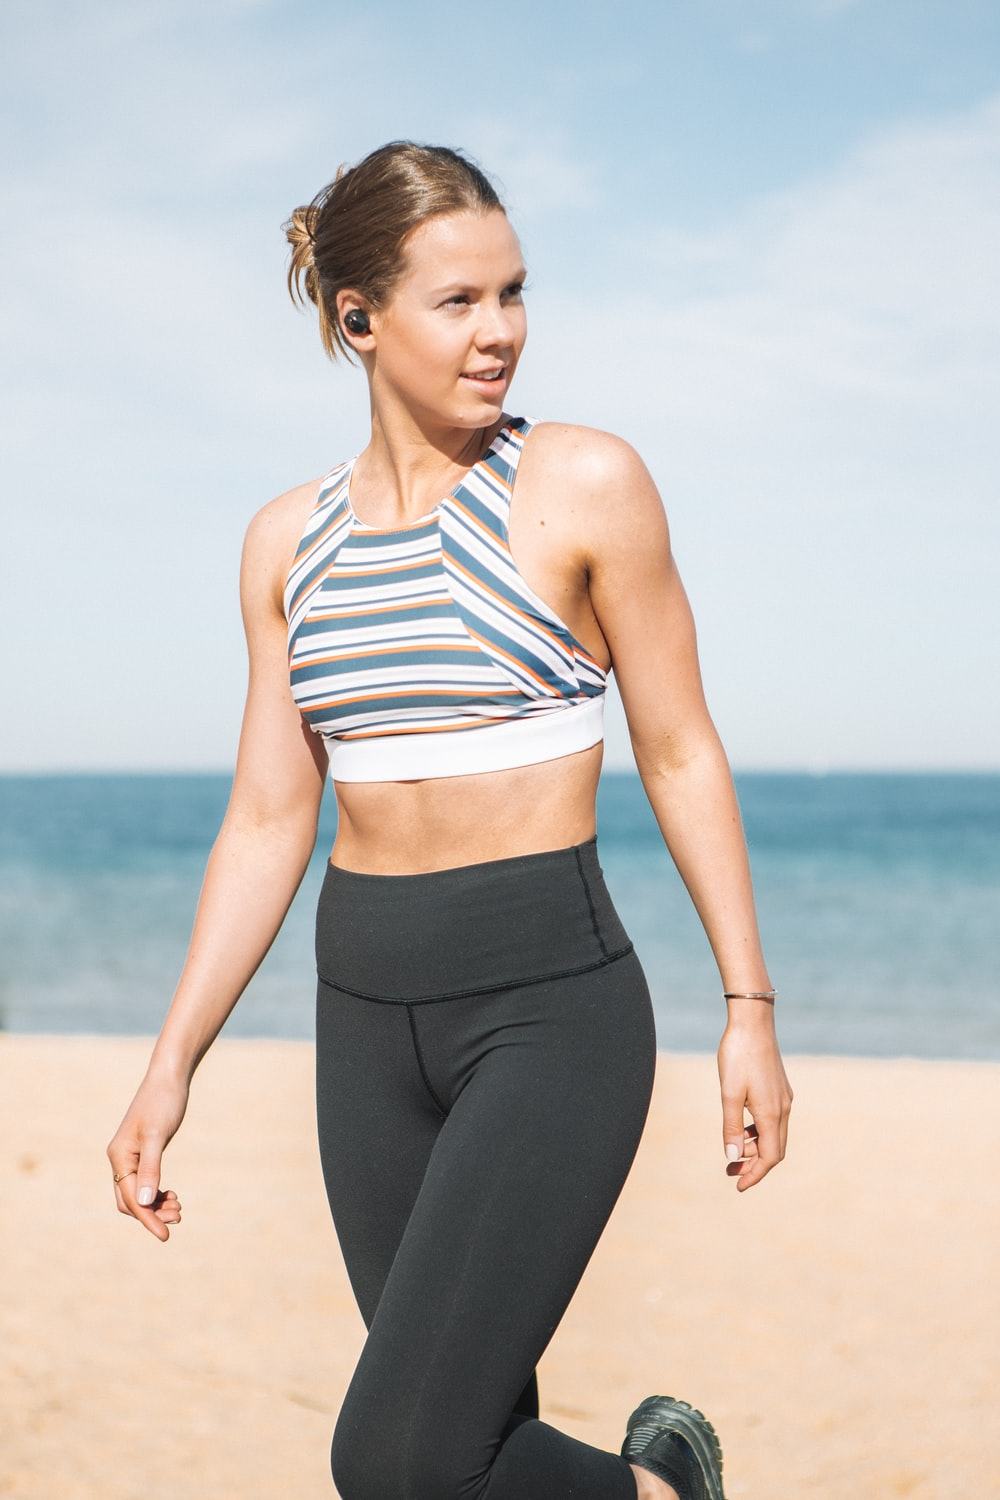 woman wearing sports bra walking on seashore